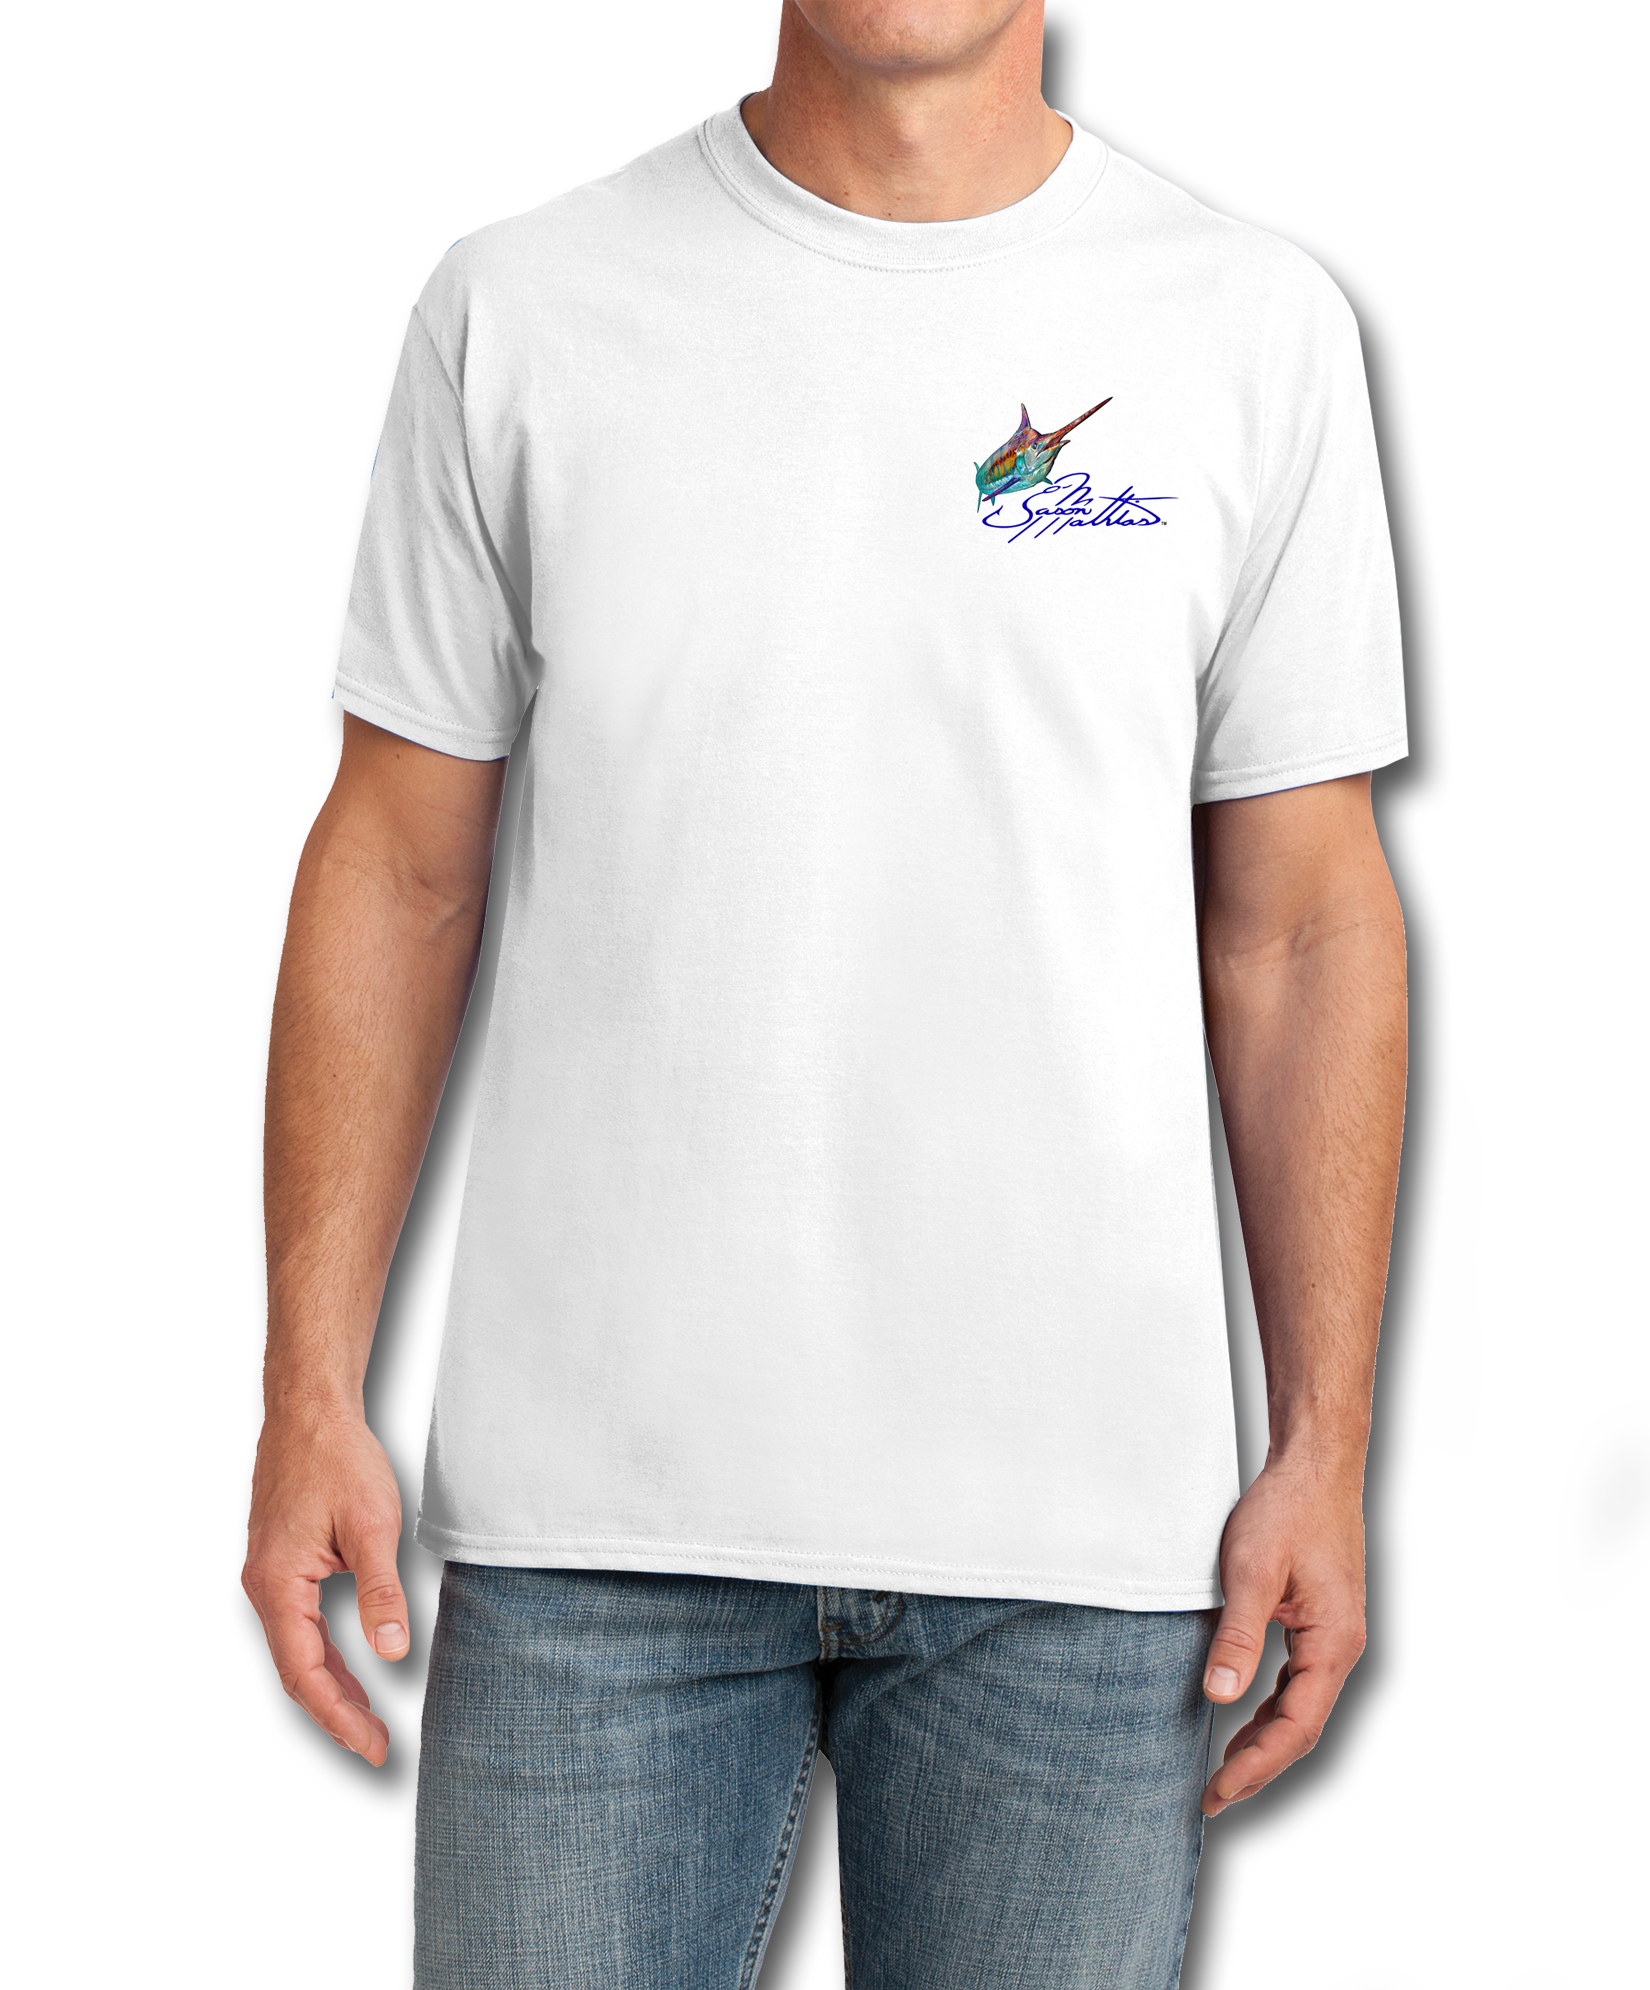 cotton-feel-t-shirt-white-jason-mathias-art-blue-marlin.png